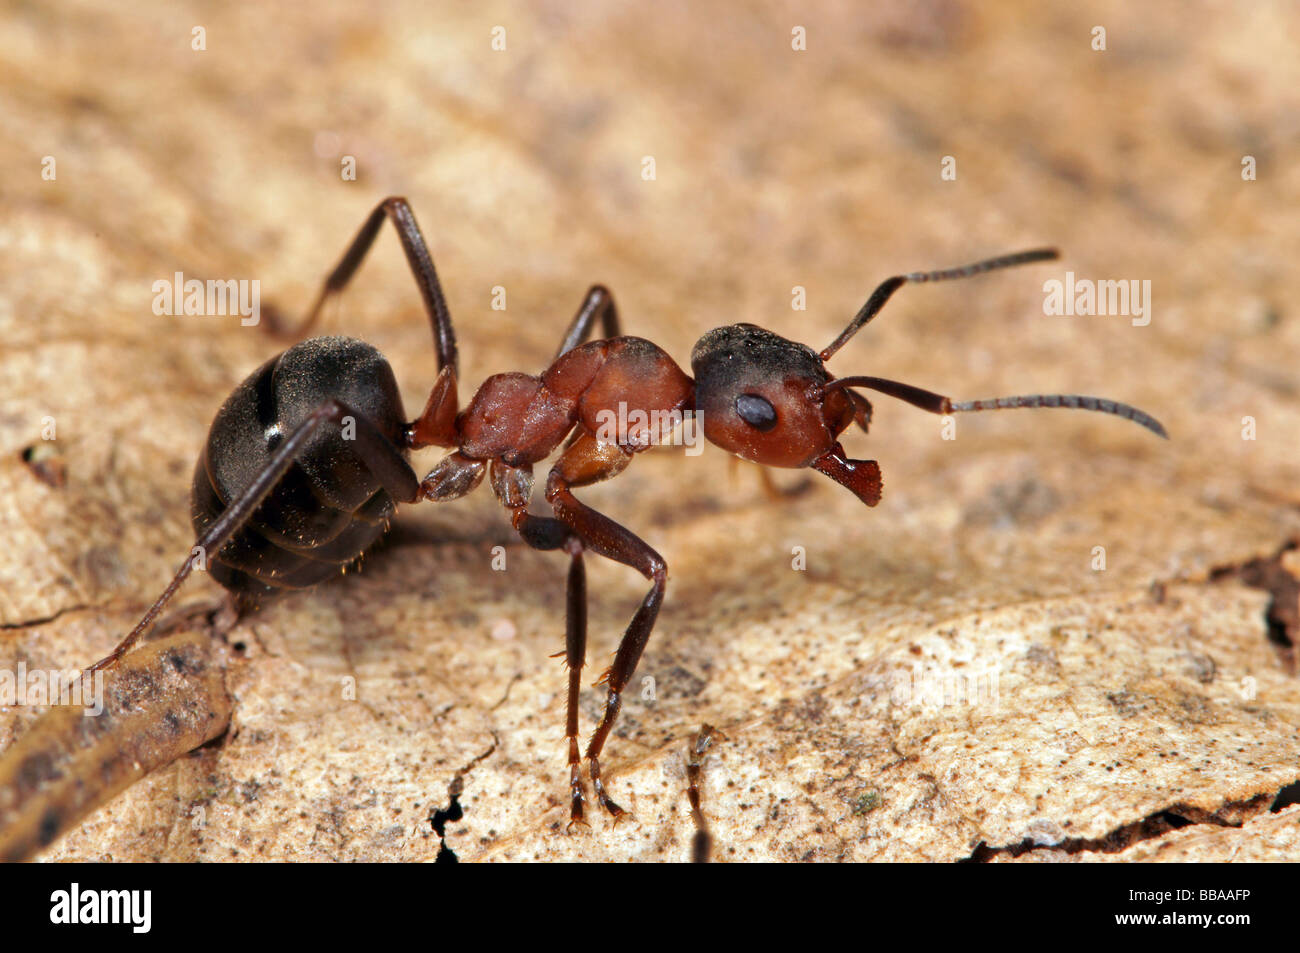 Red wood ant (Formica polyctena) - Stock Image